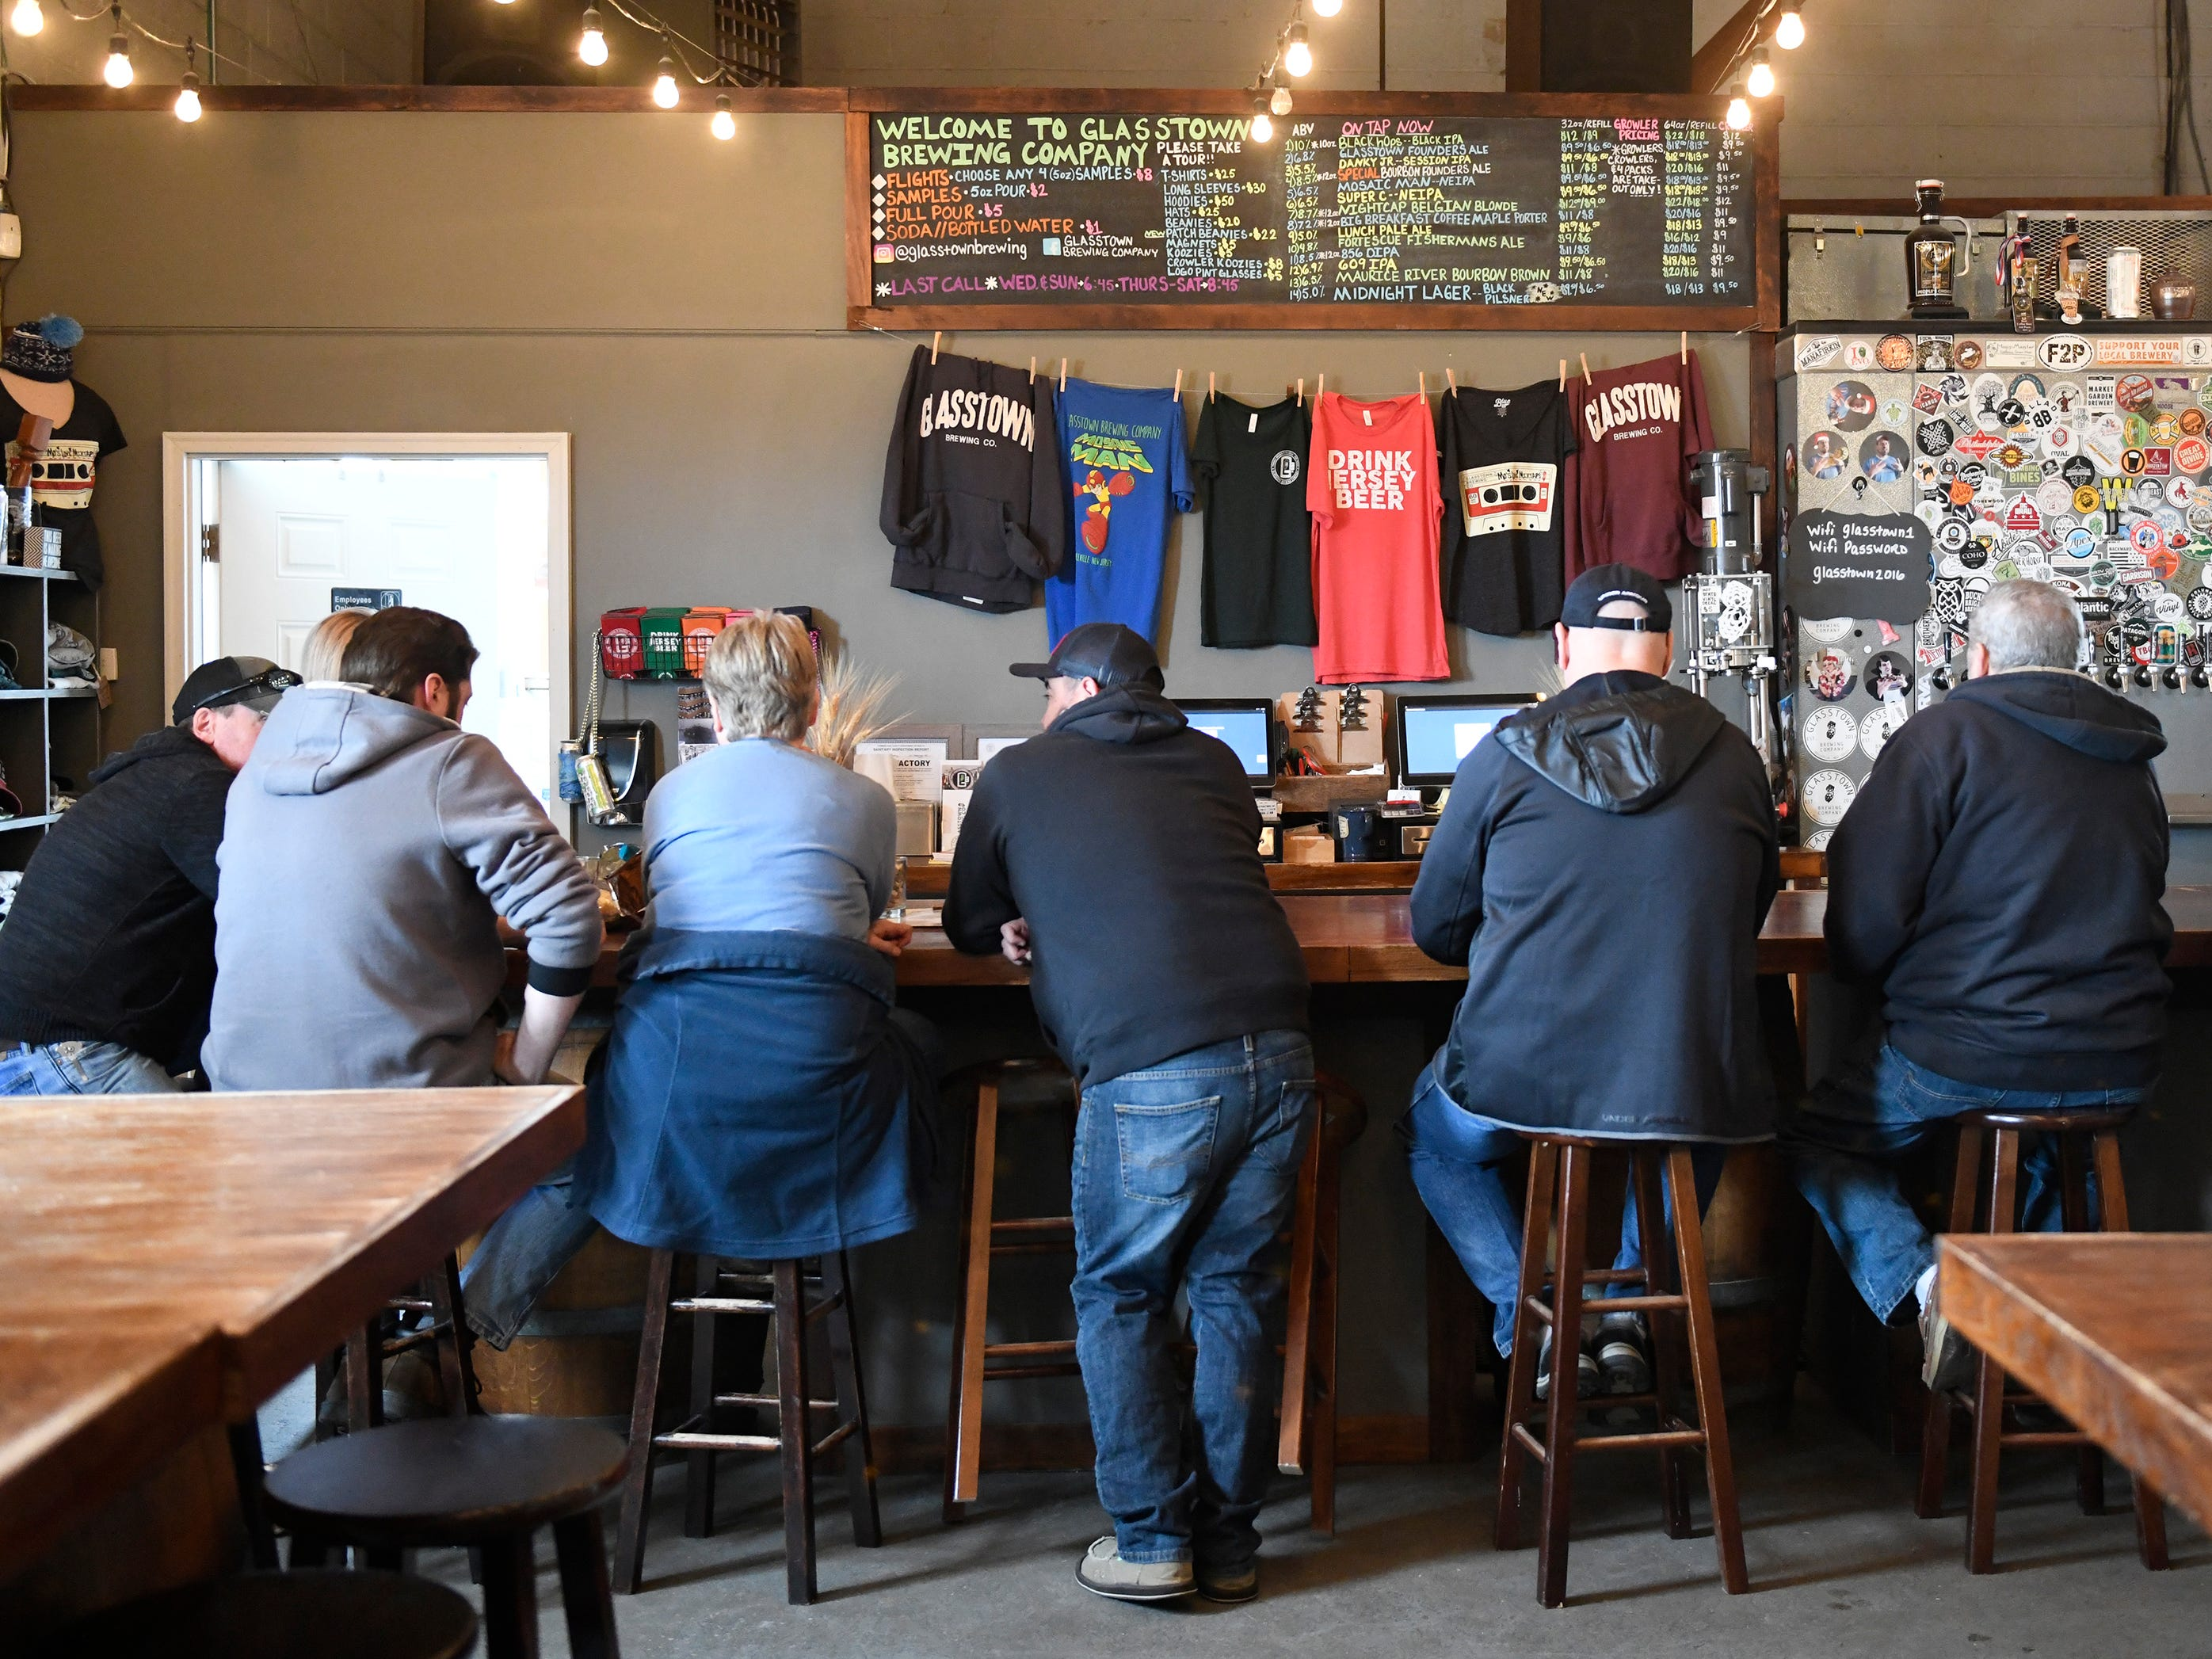 Patrons sit at the bar at Glasstown Brewing Company in Millville on Friday, March 8, 2019.